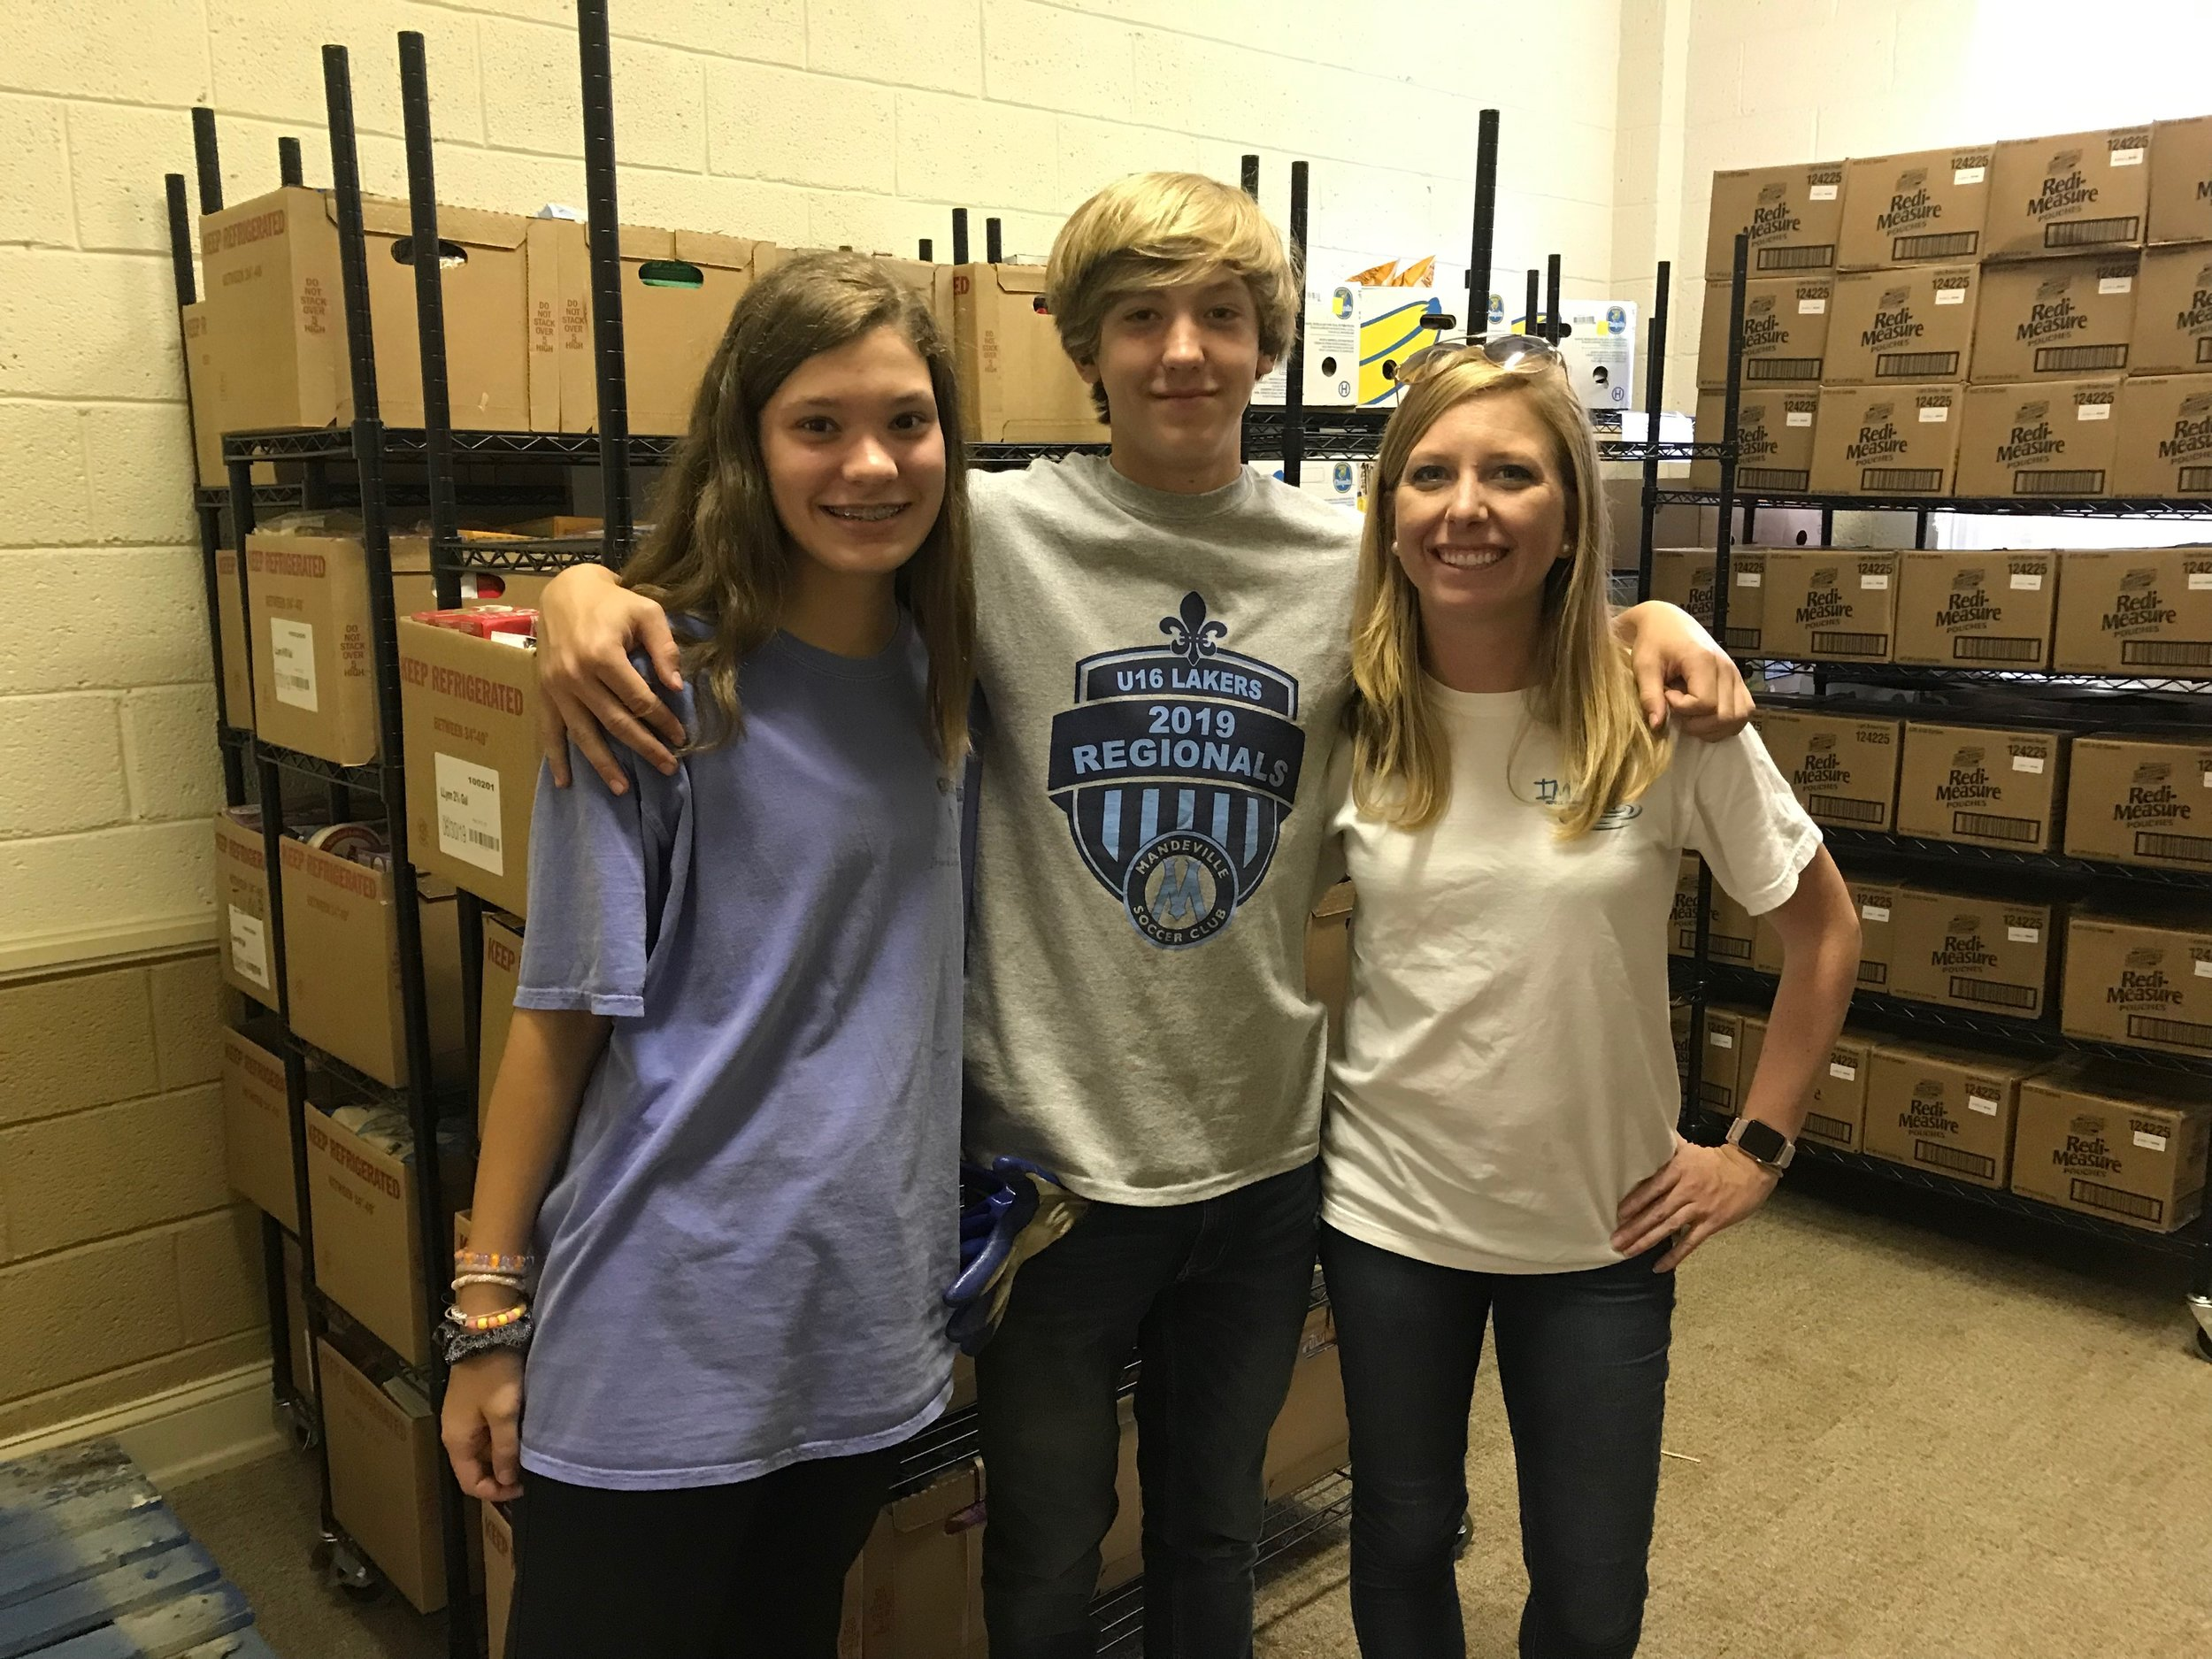 We are very thankful for eighth graders from Westover Church in High Point, NC who came during June to help pack potatoes, pinto beans, rice and staple food boxes for our July deliveries!